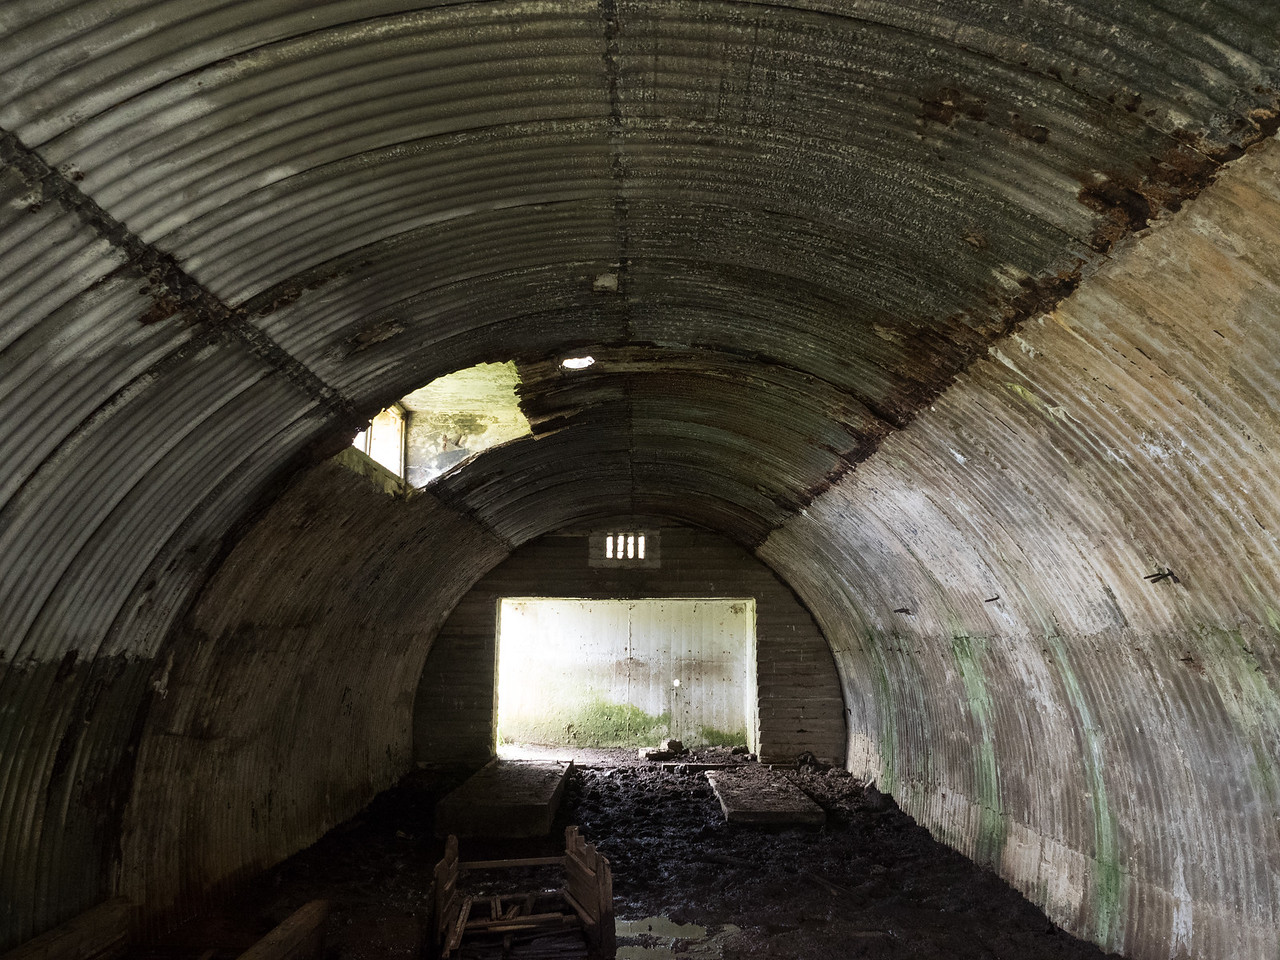 Inside one of the battery buildings.